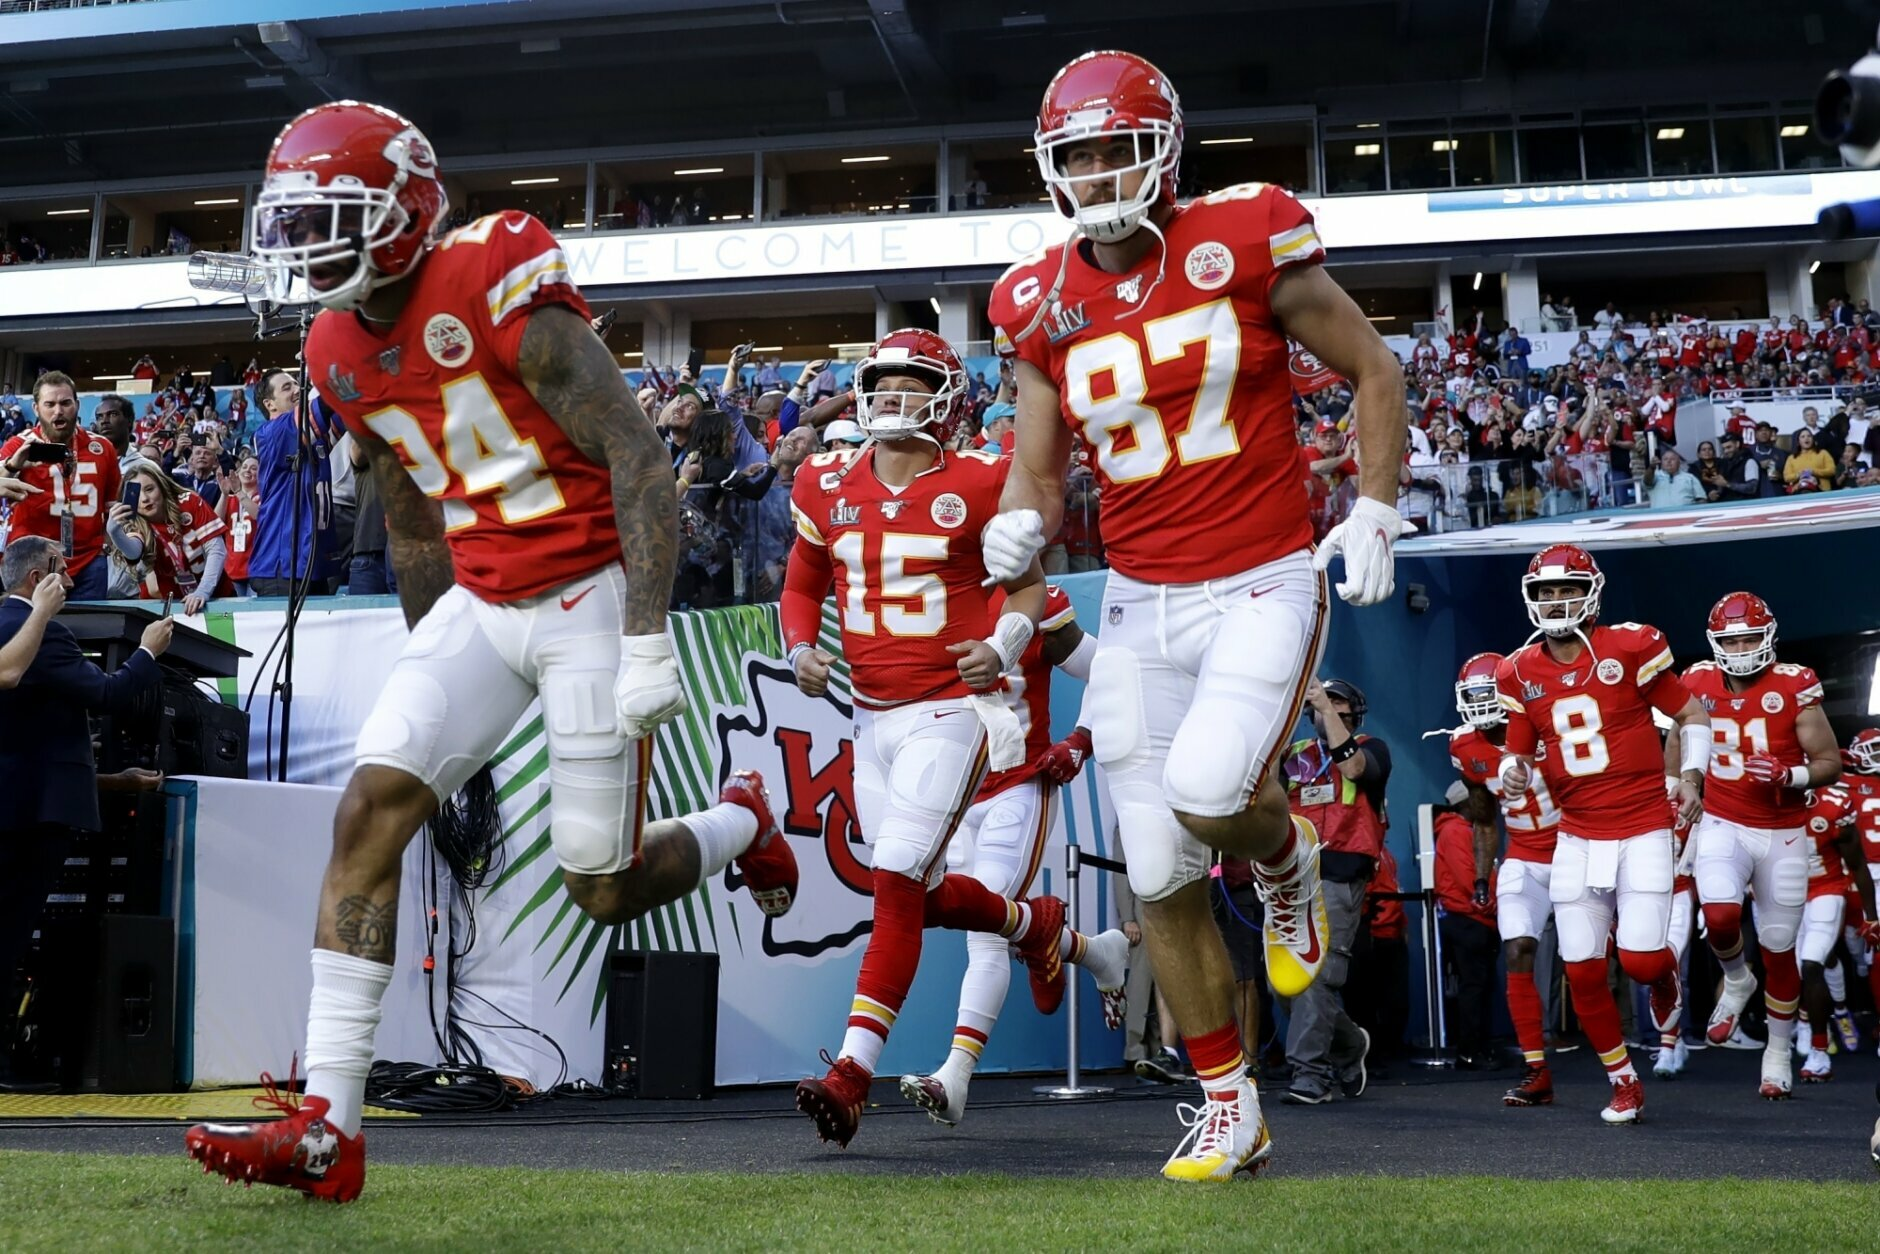 Kansas City Chiefs' Jordan Lucas (24), quarterback Patrick Mahomes (15) and Travis Kelce (87) take the field before the NFL Super Bowl 54 football game between the San Francisco 49ers and Kansas City Chiefs Sunday, Feb. 2, 2020, in Miami Gardens, Fla. (AP Photo/Seth Wenig)